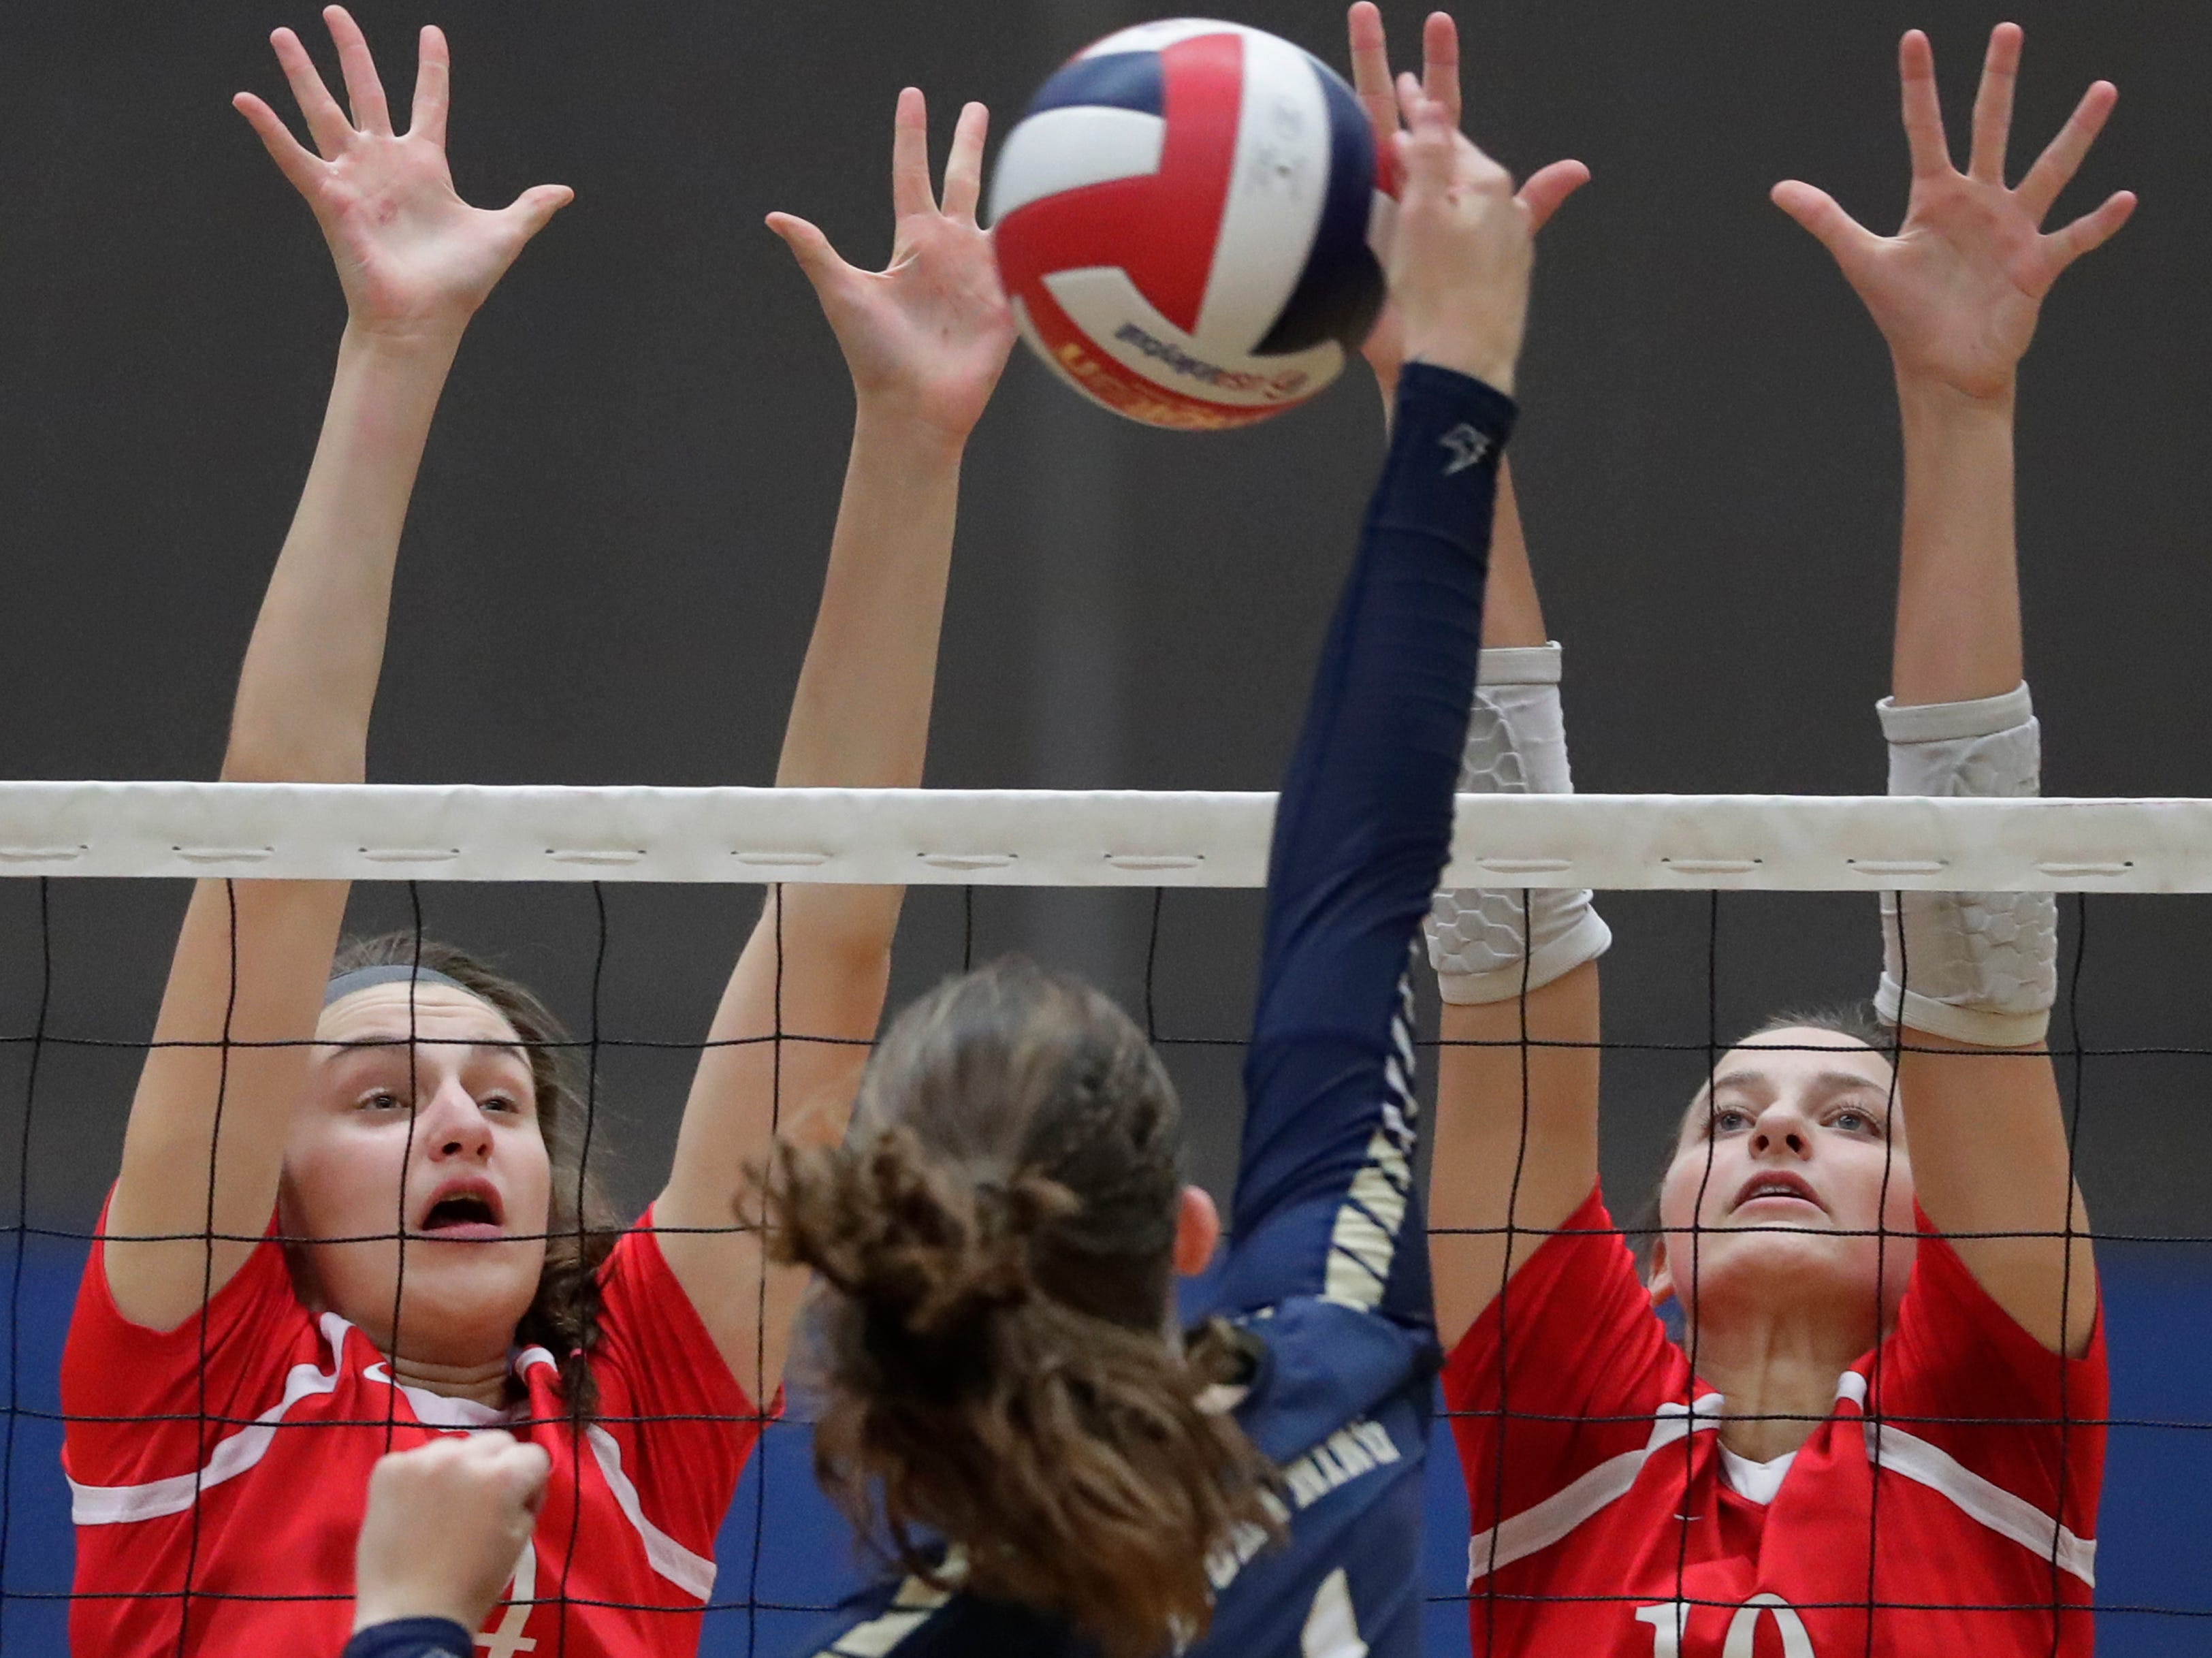 Appleton North High School's Sarah Ganser (1) hits a shot against Kimberly High School's Maddy Schreiber (14) and Courtney Pearson (10) during their girls volleyball match Thursday, Sept. 27, 2018, in Appleton, Wis. Dan Powers/USA TODAY NETWORK-Wisconsin